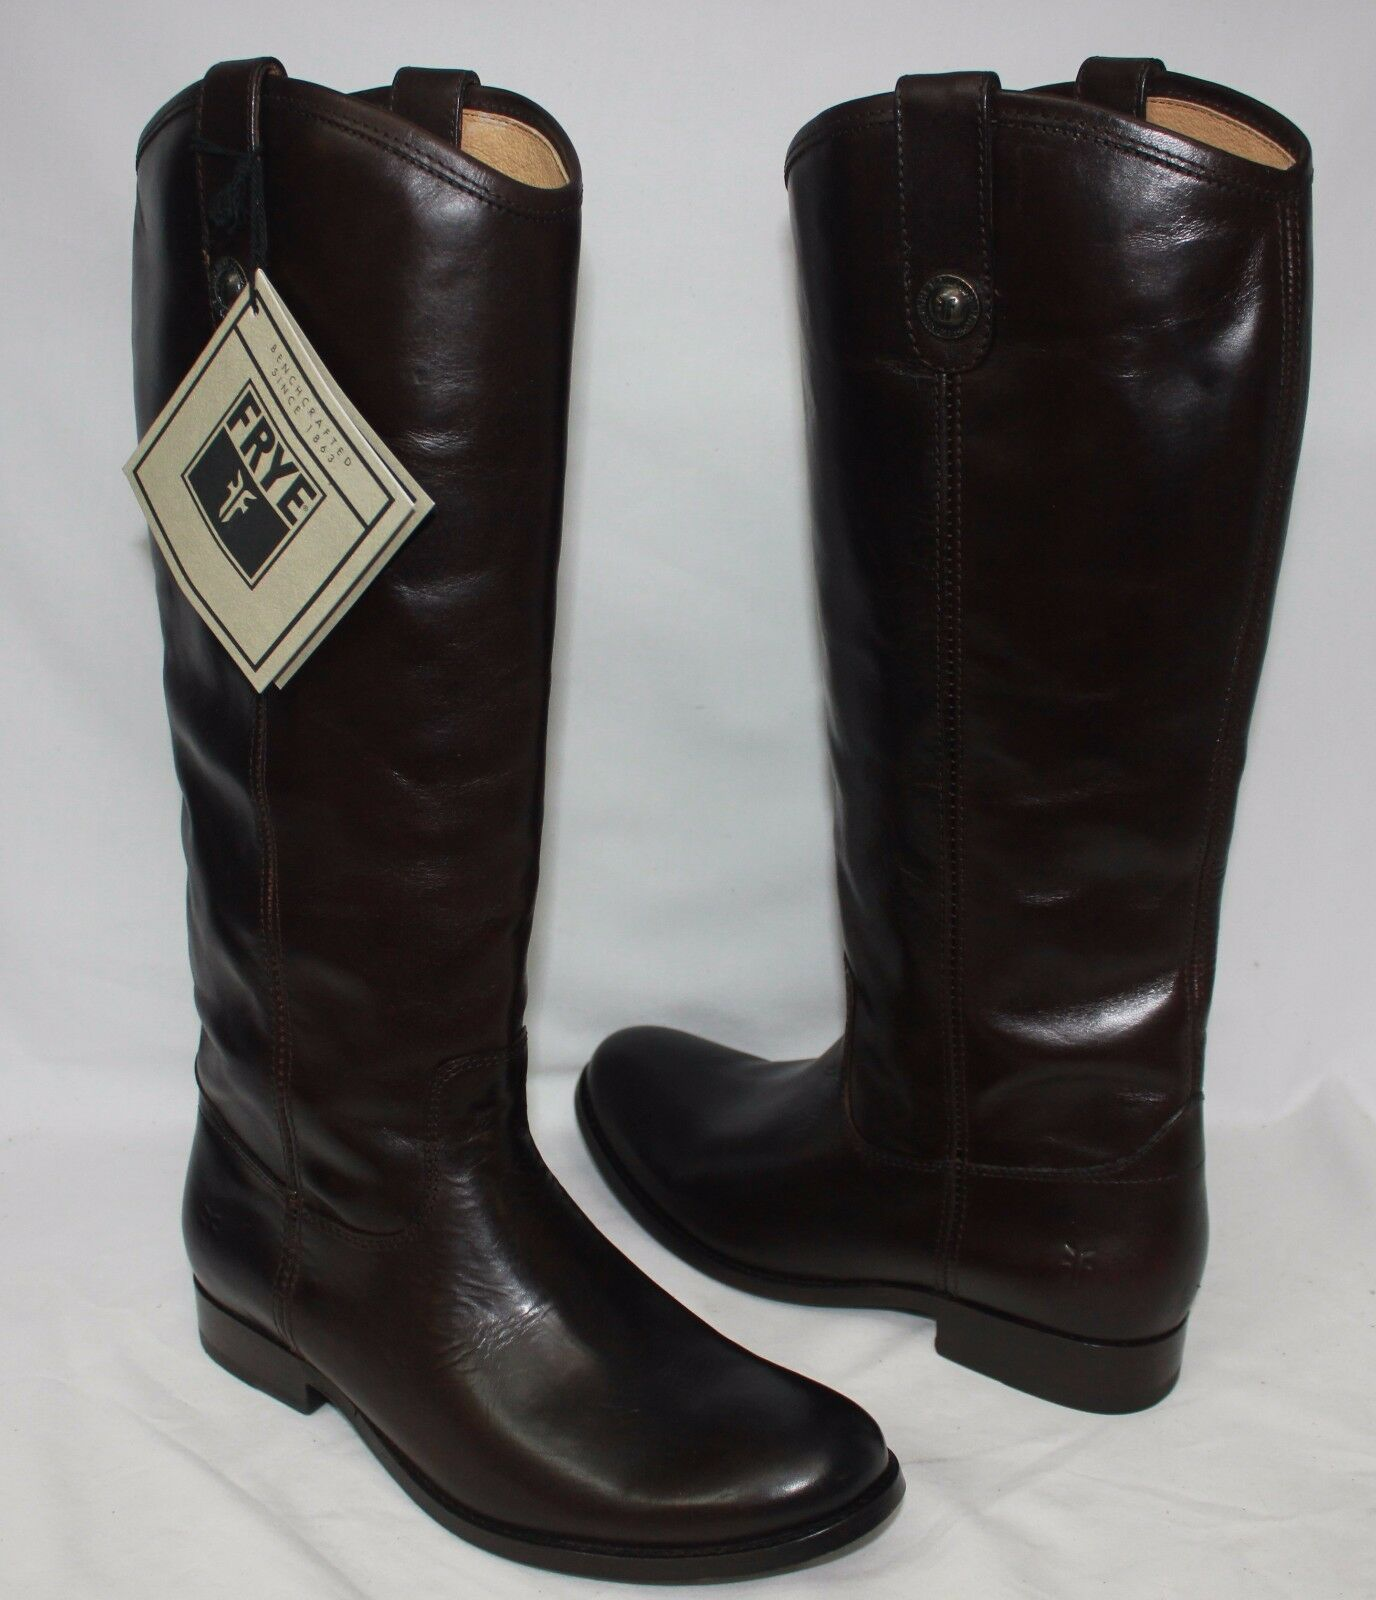 Frye Women's Melissa Button Dark Brown Boots Style 77167 New With Box!